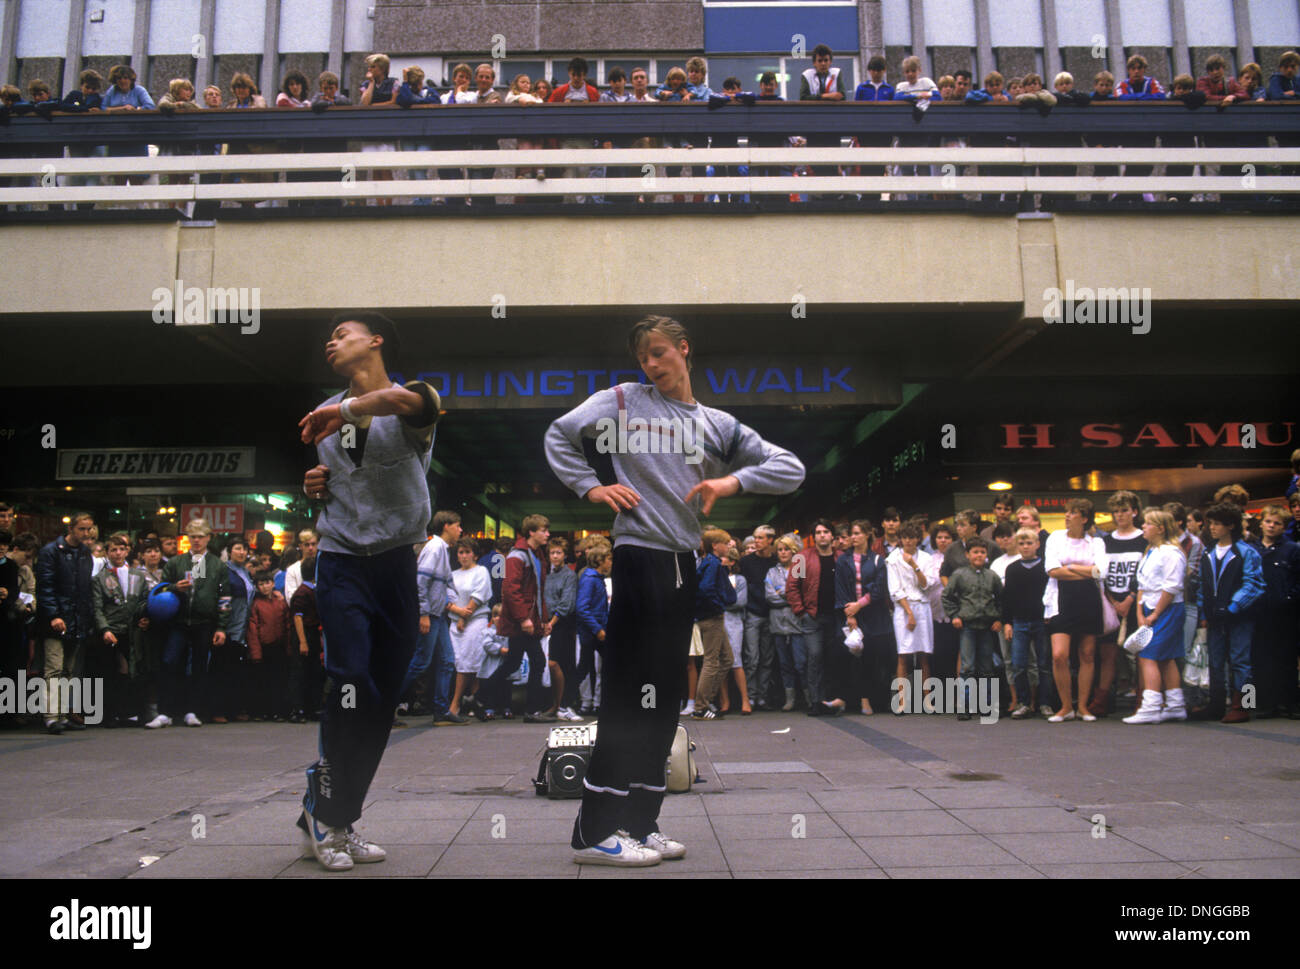 Break Dancing Stockport Lancashire. 1980s England Britain HOMER SYKES - Stock Image